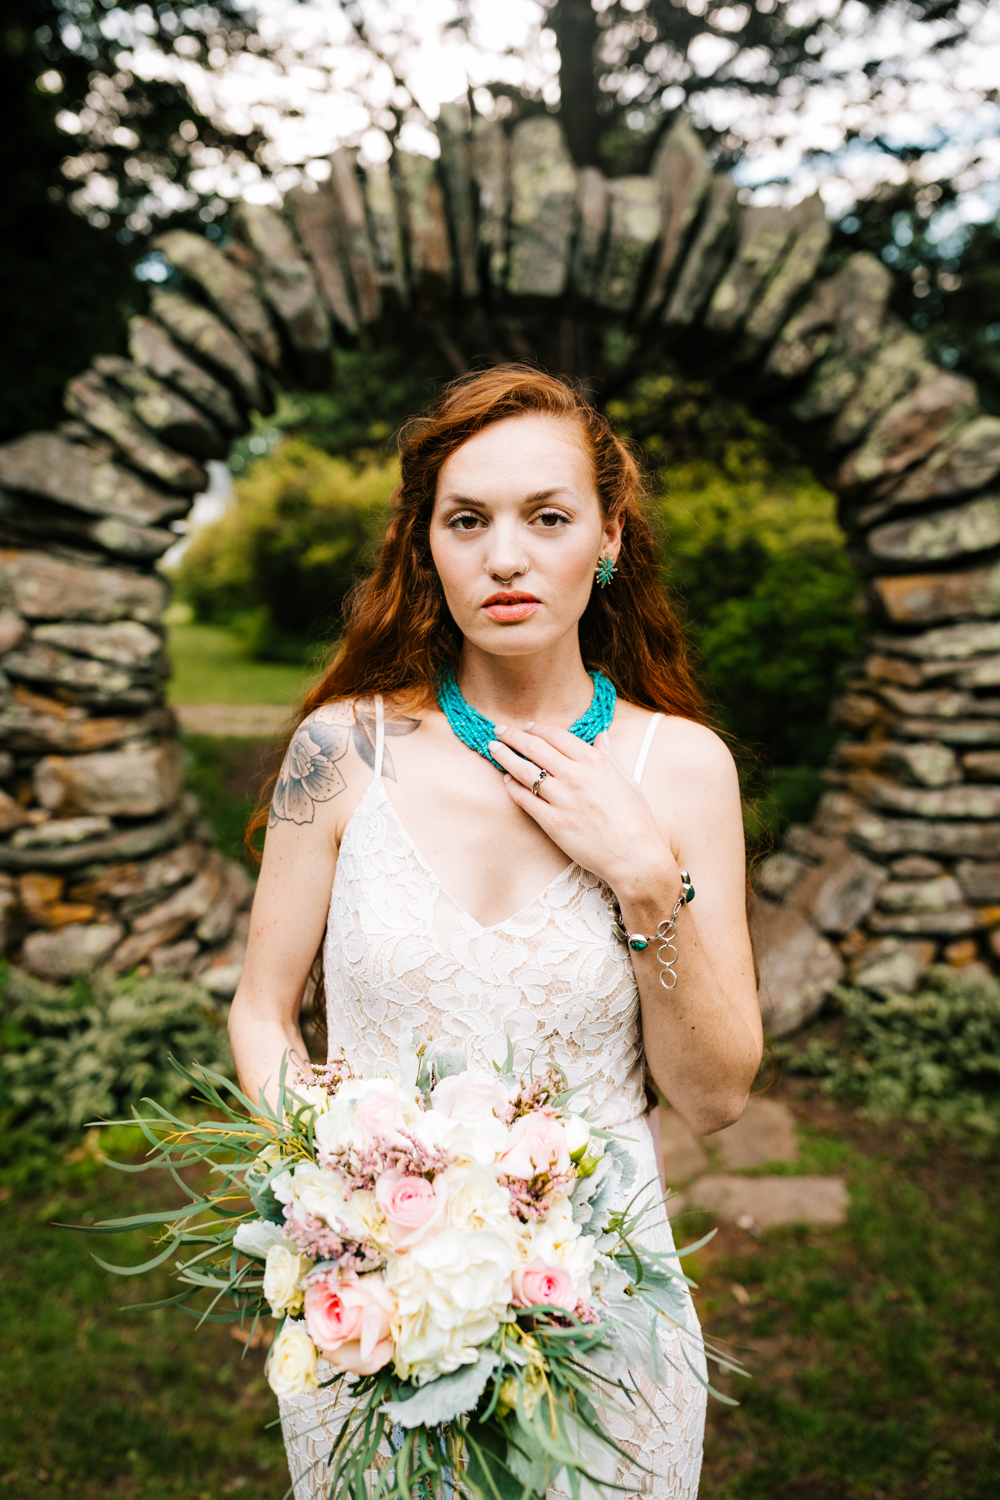 natural-fun-intimate-wedding-elopement-kinney-azalea-garden-north-kingstown-rhode-island-adventurous-andrea-van-orsouw-photography.jpg